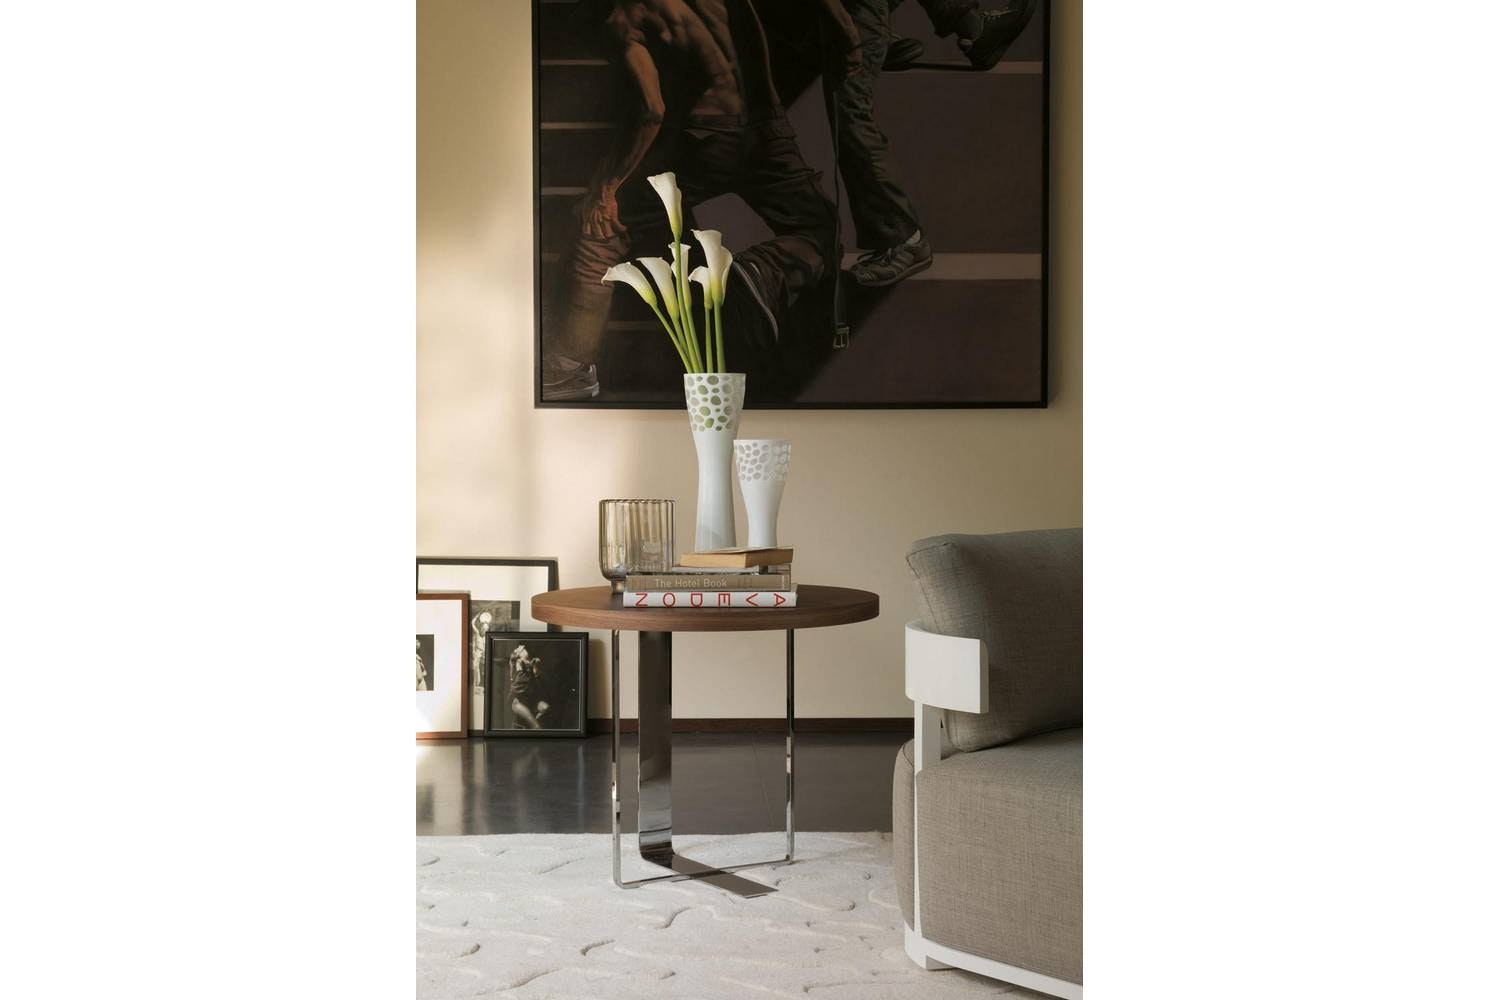 Place Side Table by M. Marconato - T. Zappa for Porada